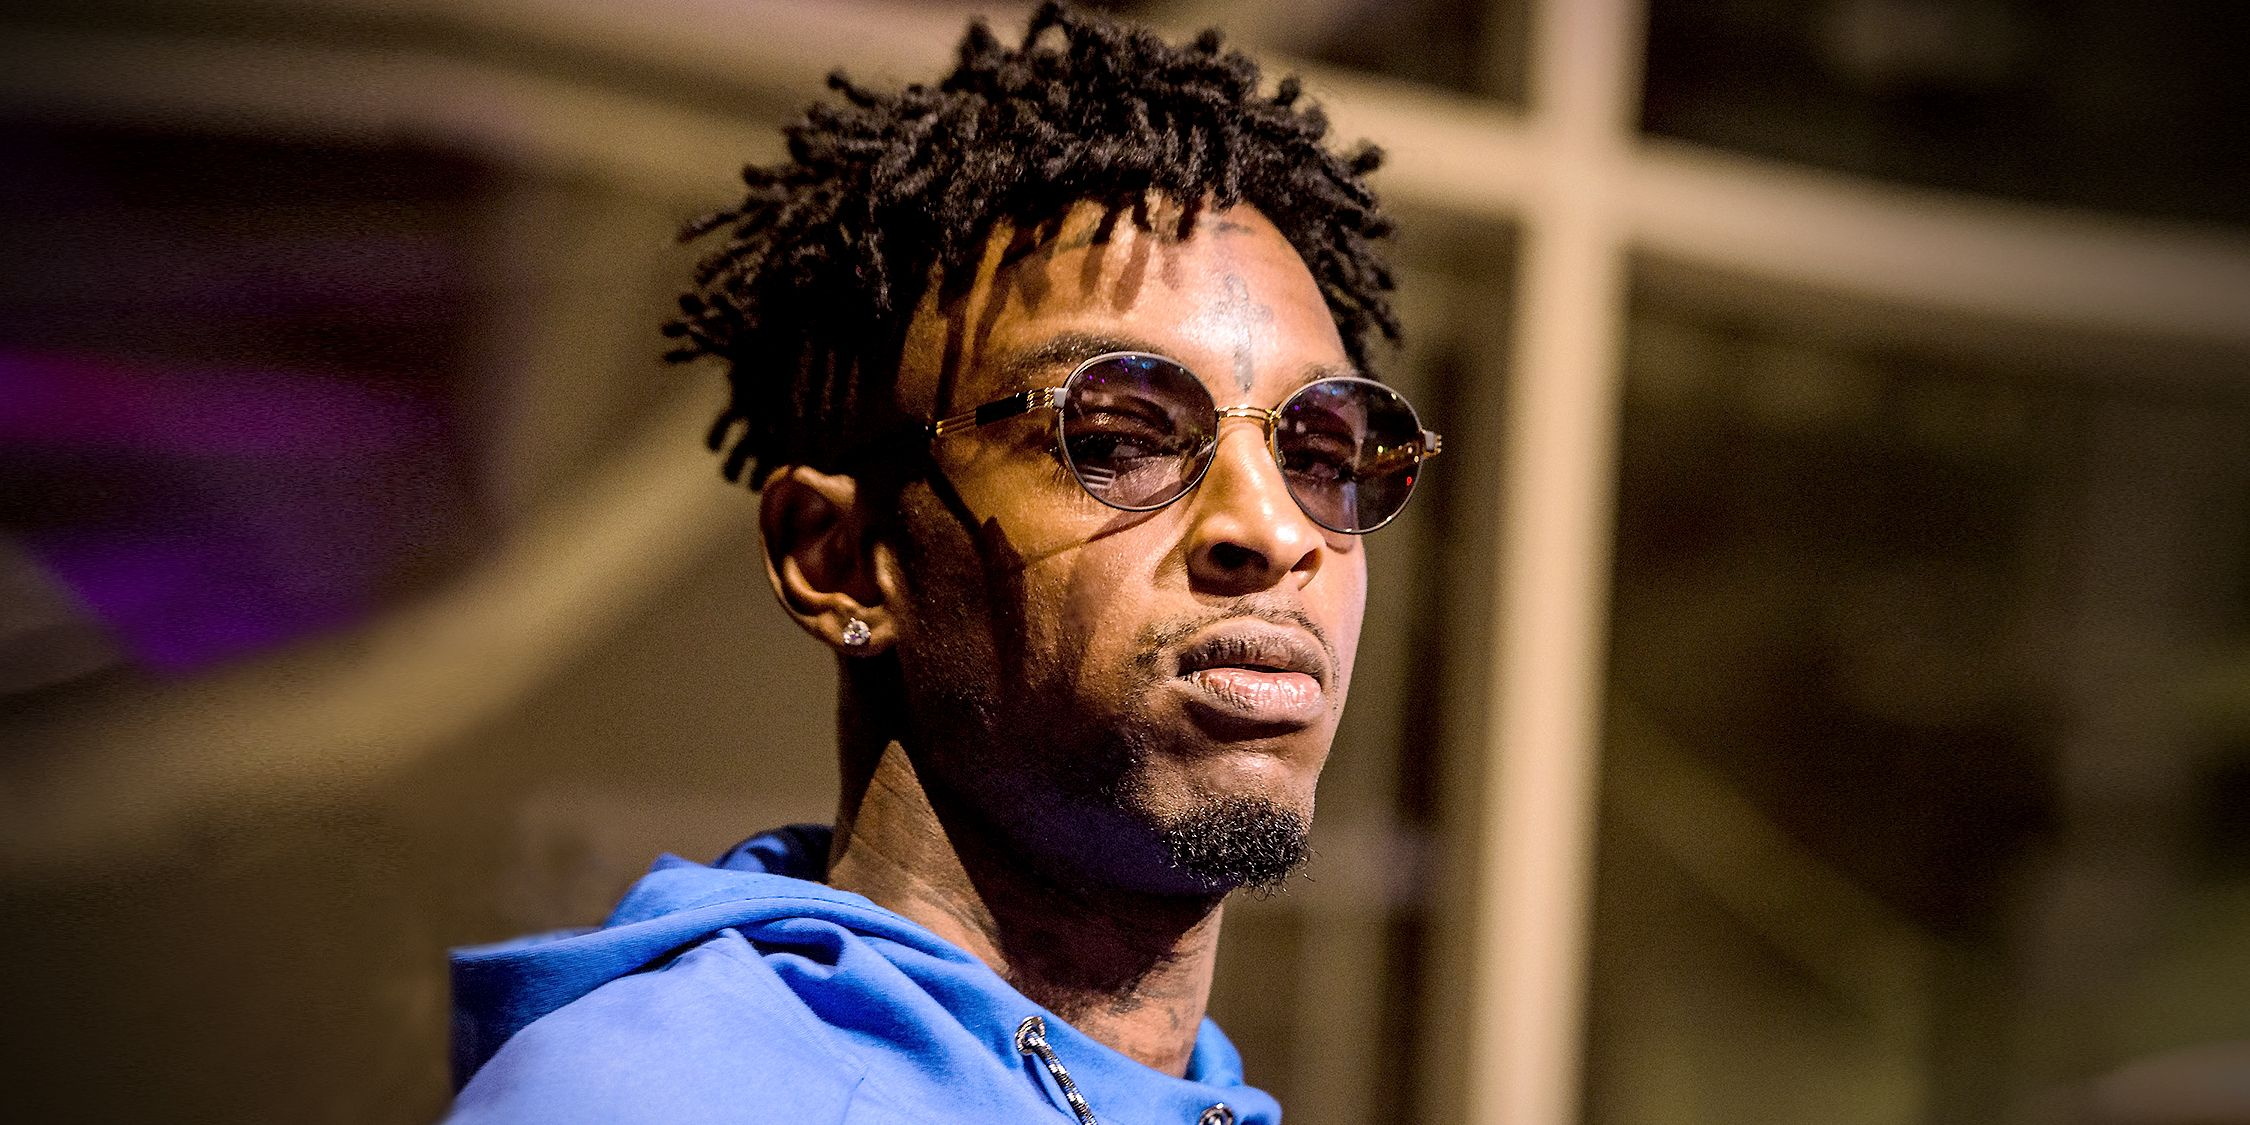 21 savage hd wallpaper background image 2250x1125 id 884258